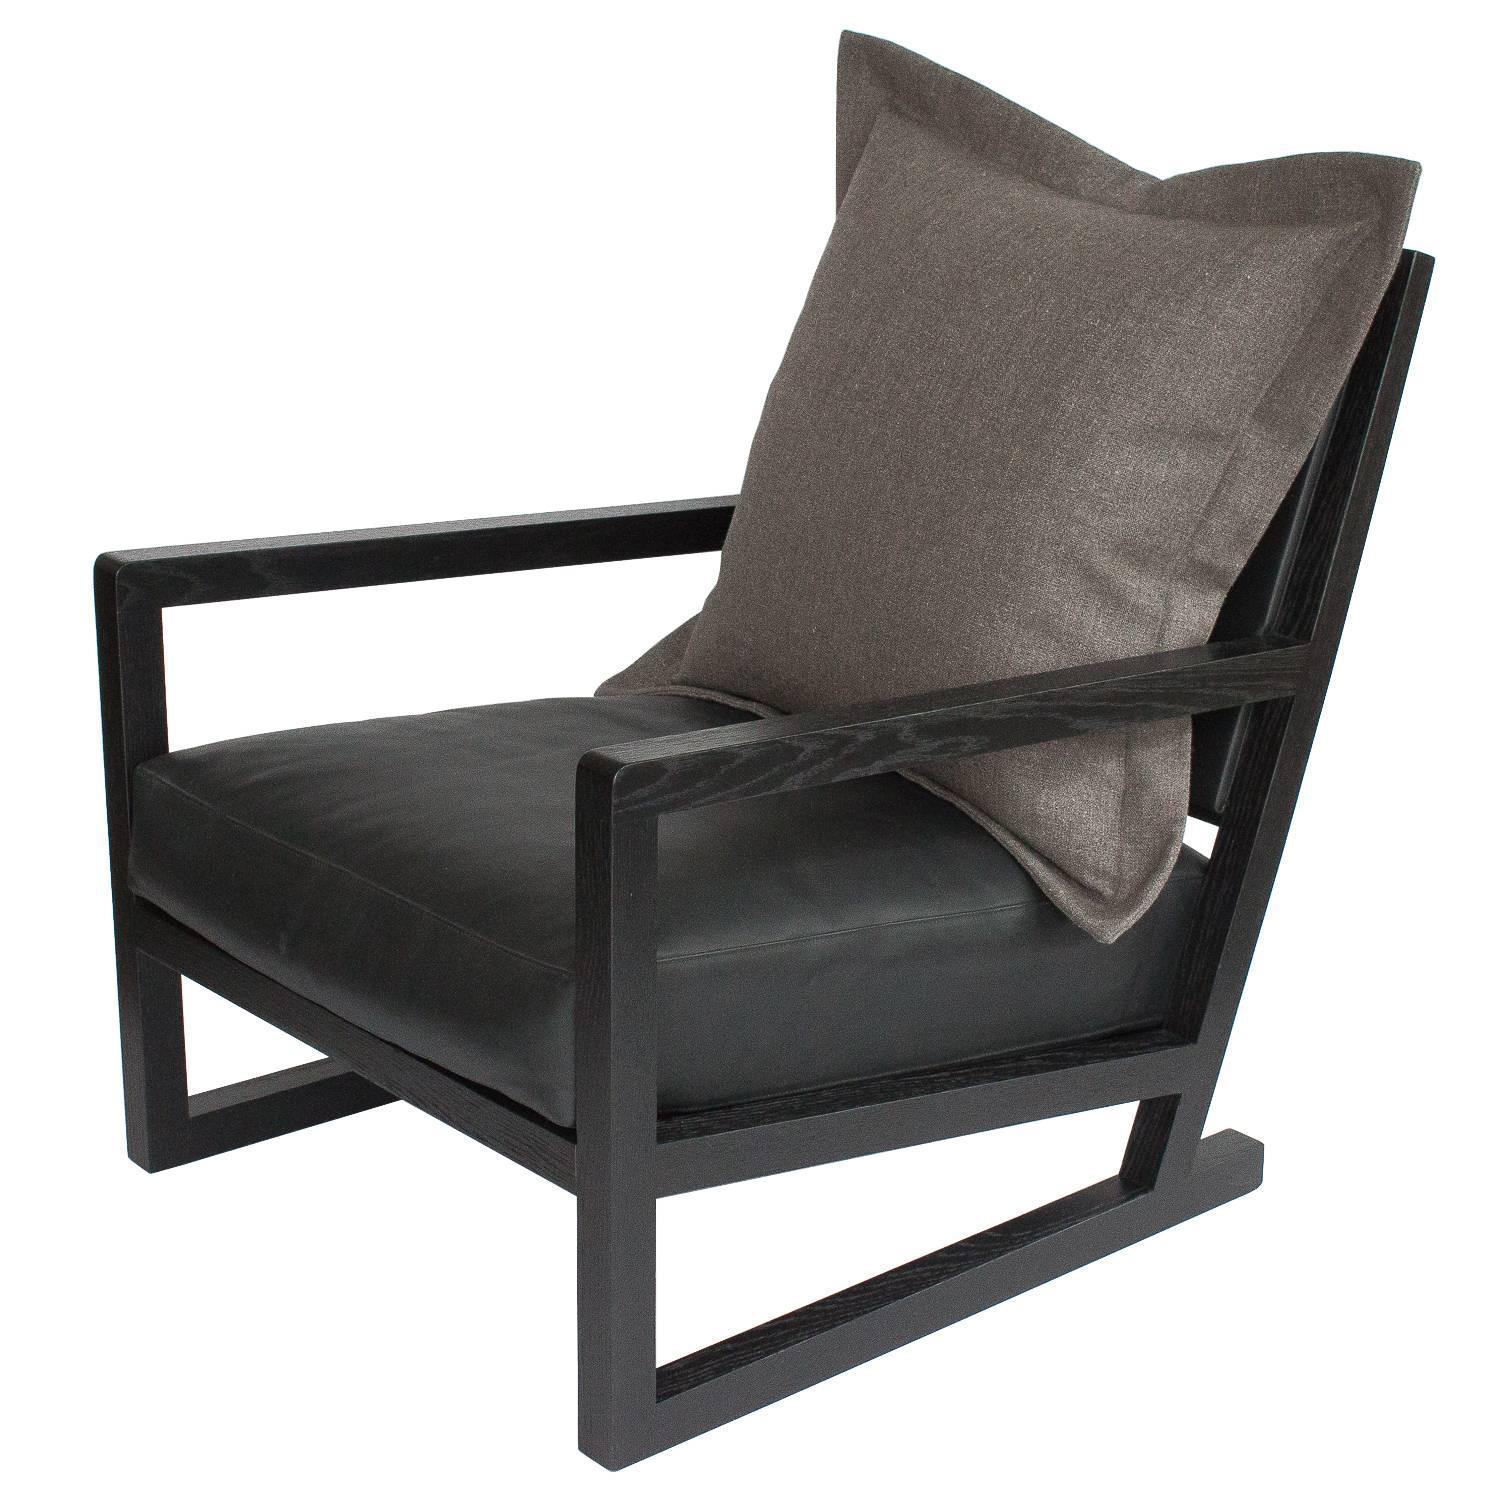 Antonio Citterio Clio Lounge Chair For B&B Italia